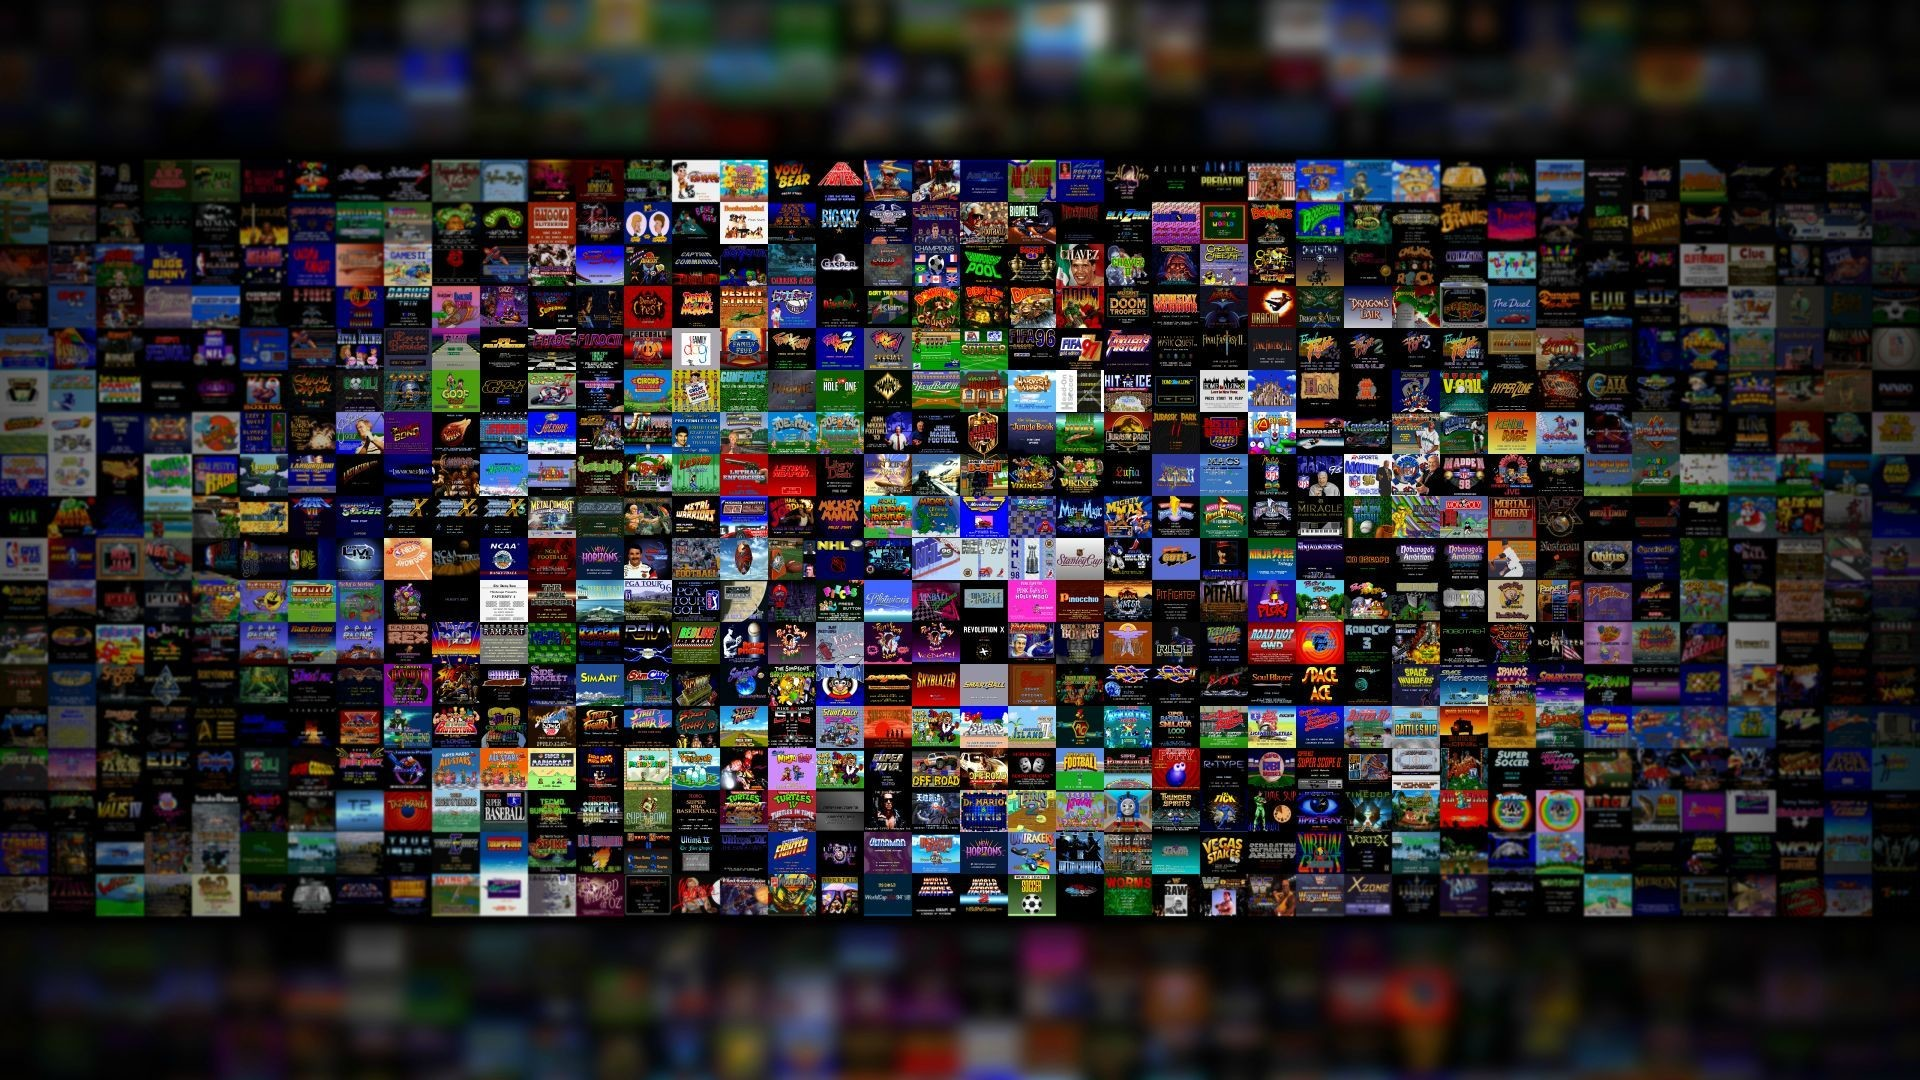 700+ SNES game title screen wallpaper for you guys. Enjoy. : snes